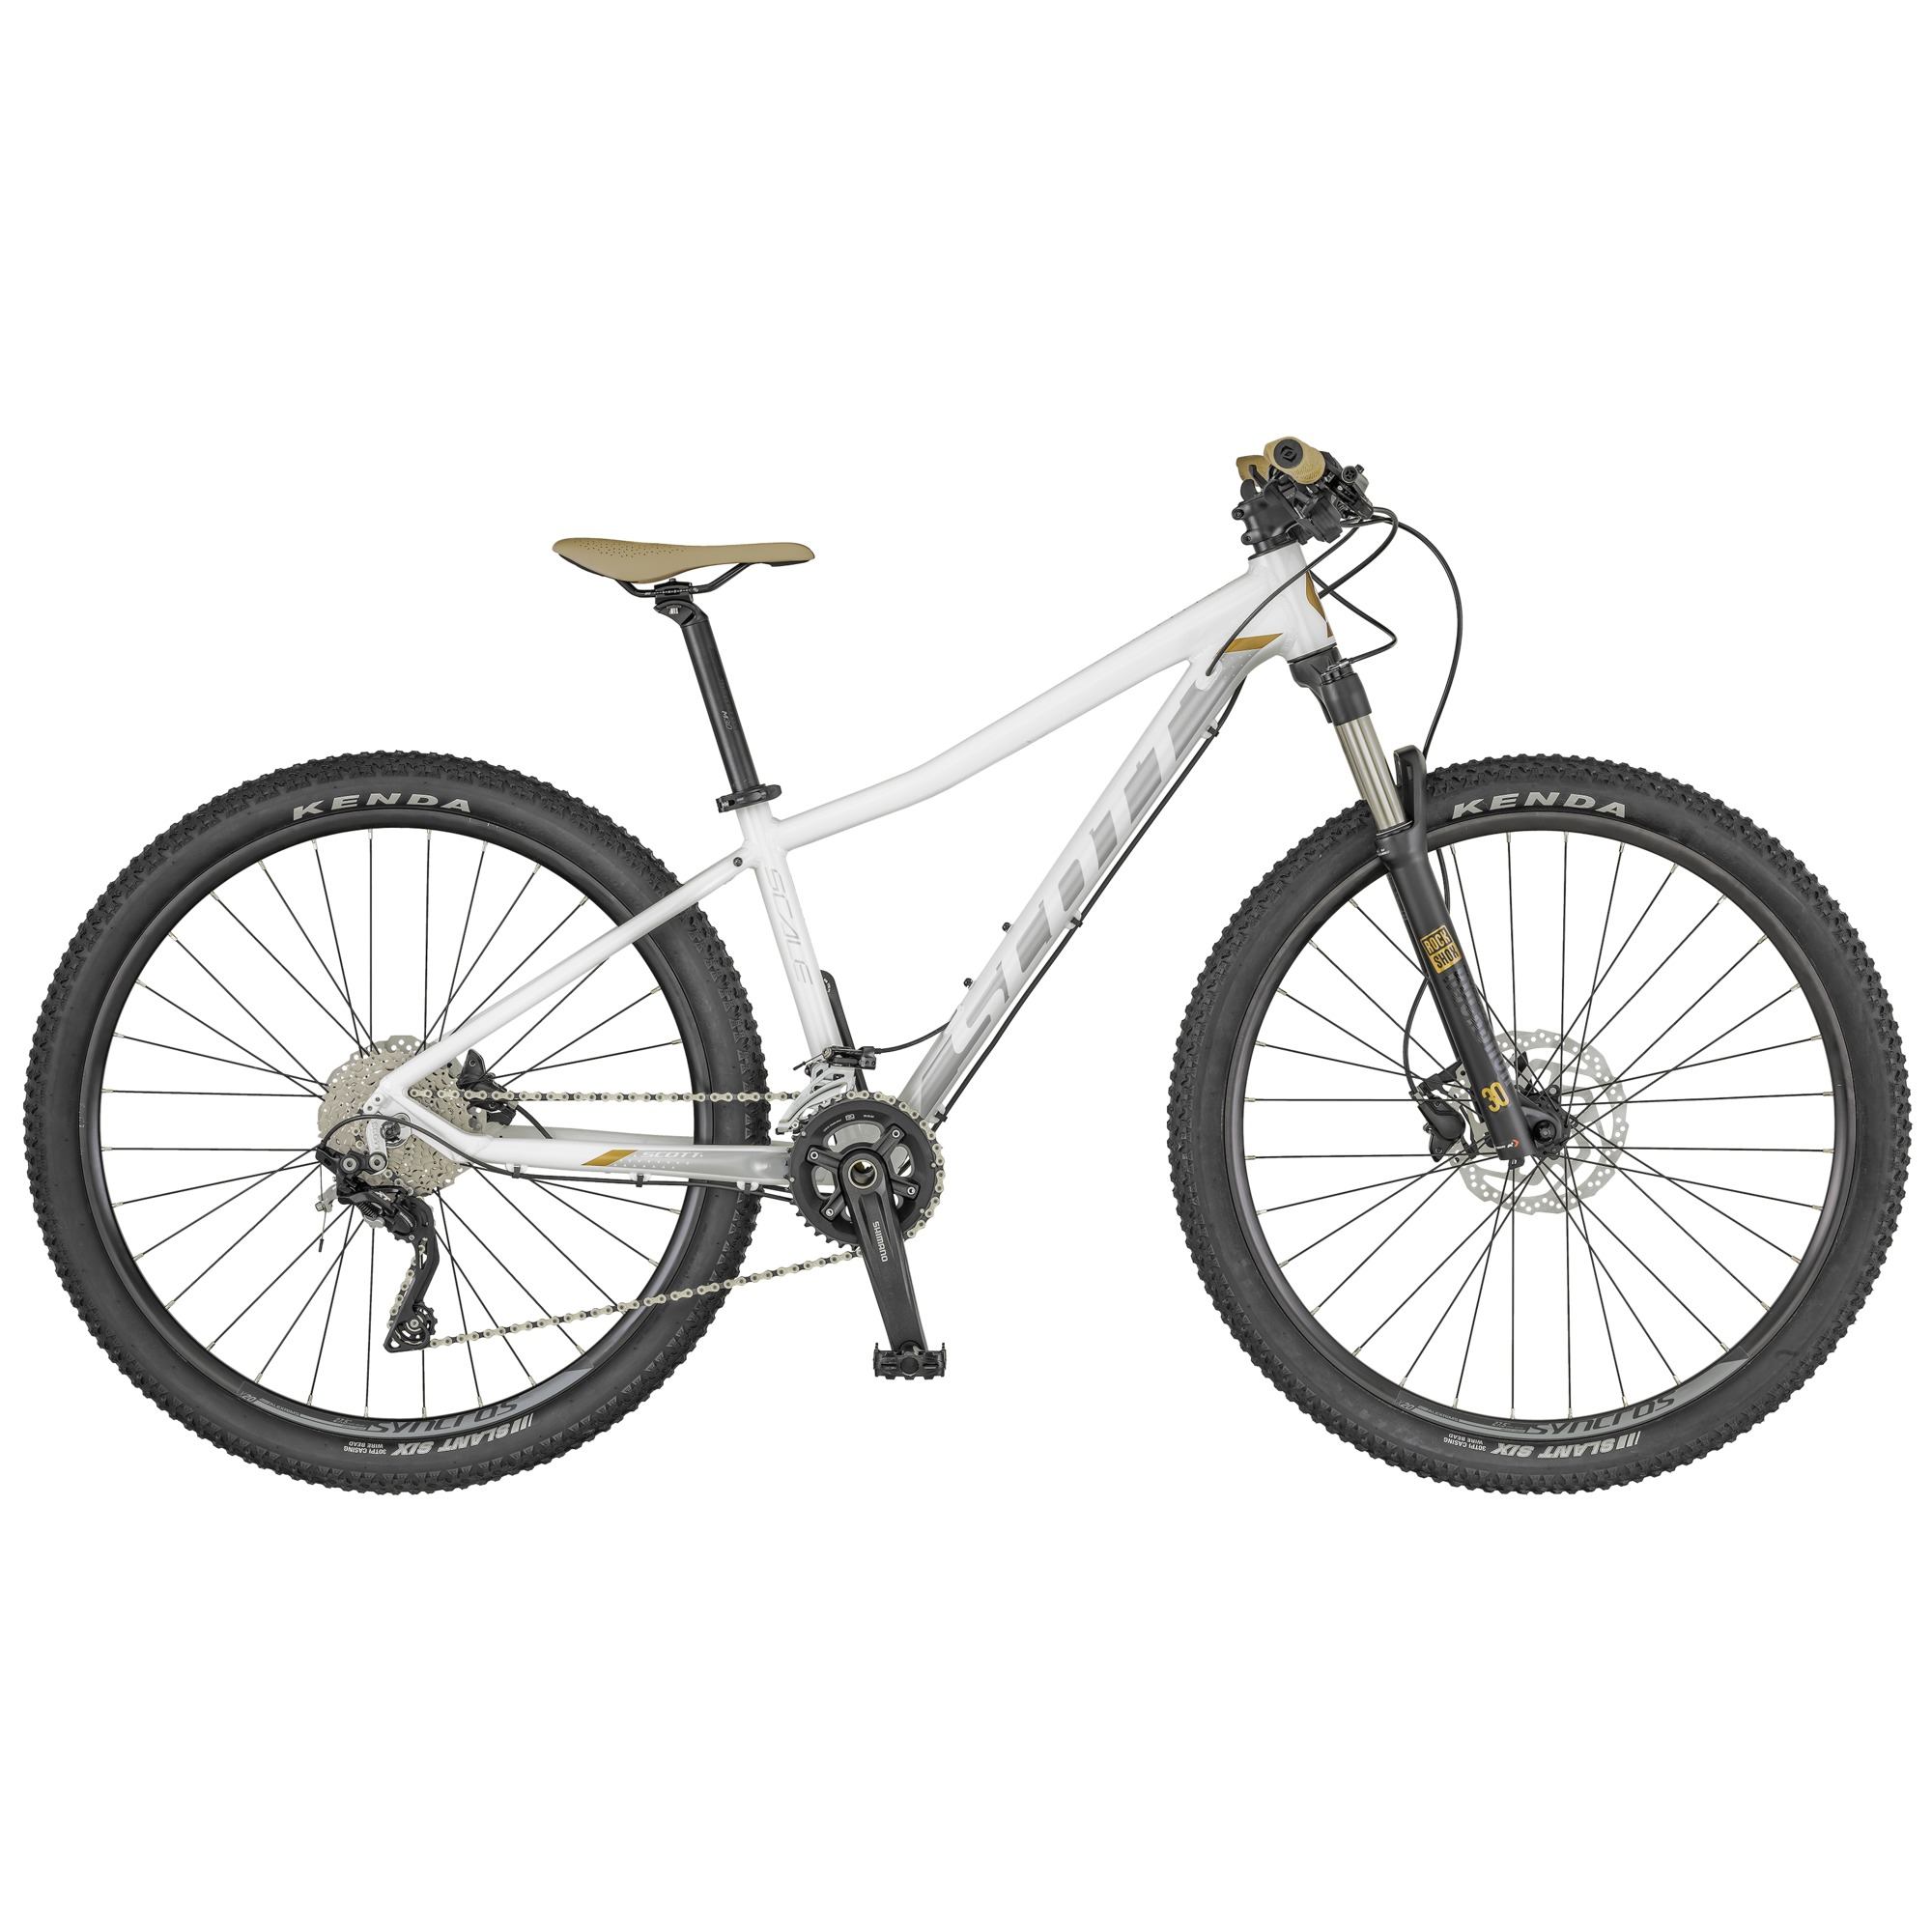 Harga Frame Giant Atx 275 Update 2018 Jgos17 Sony Headphones Mdr Zx110 Ap Black Mountain Bikes Page 5